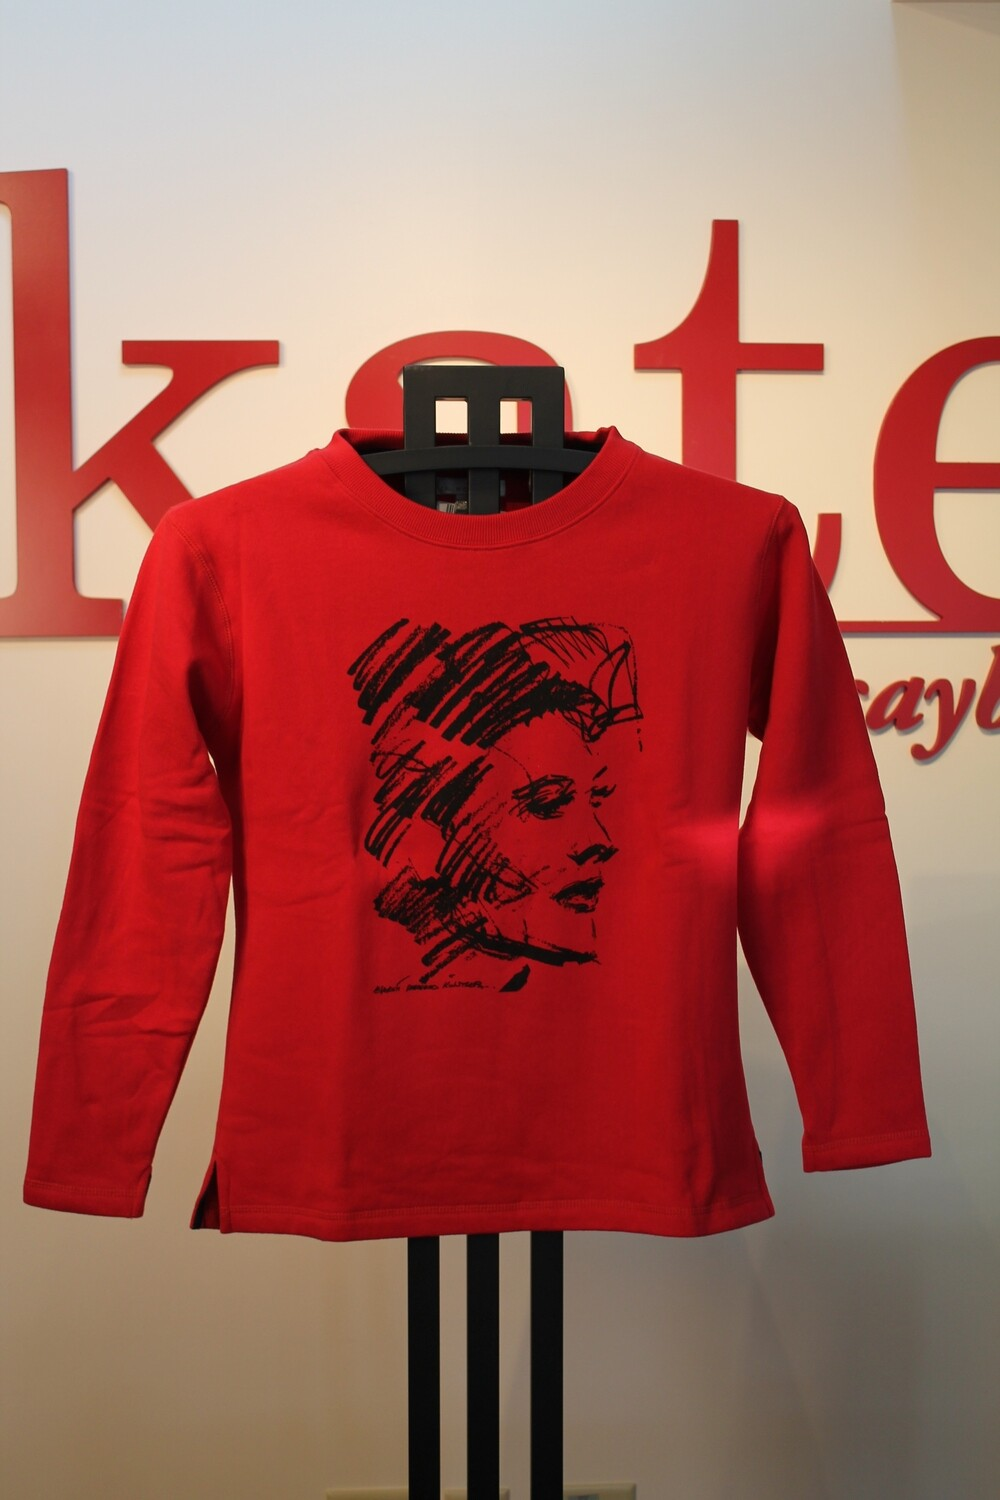 Sweatshirt - Kate Image